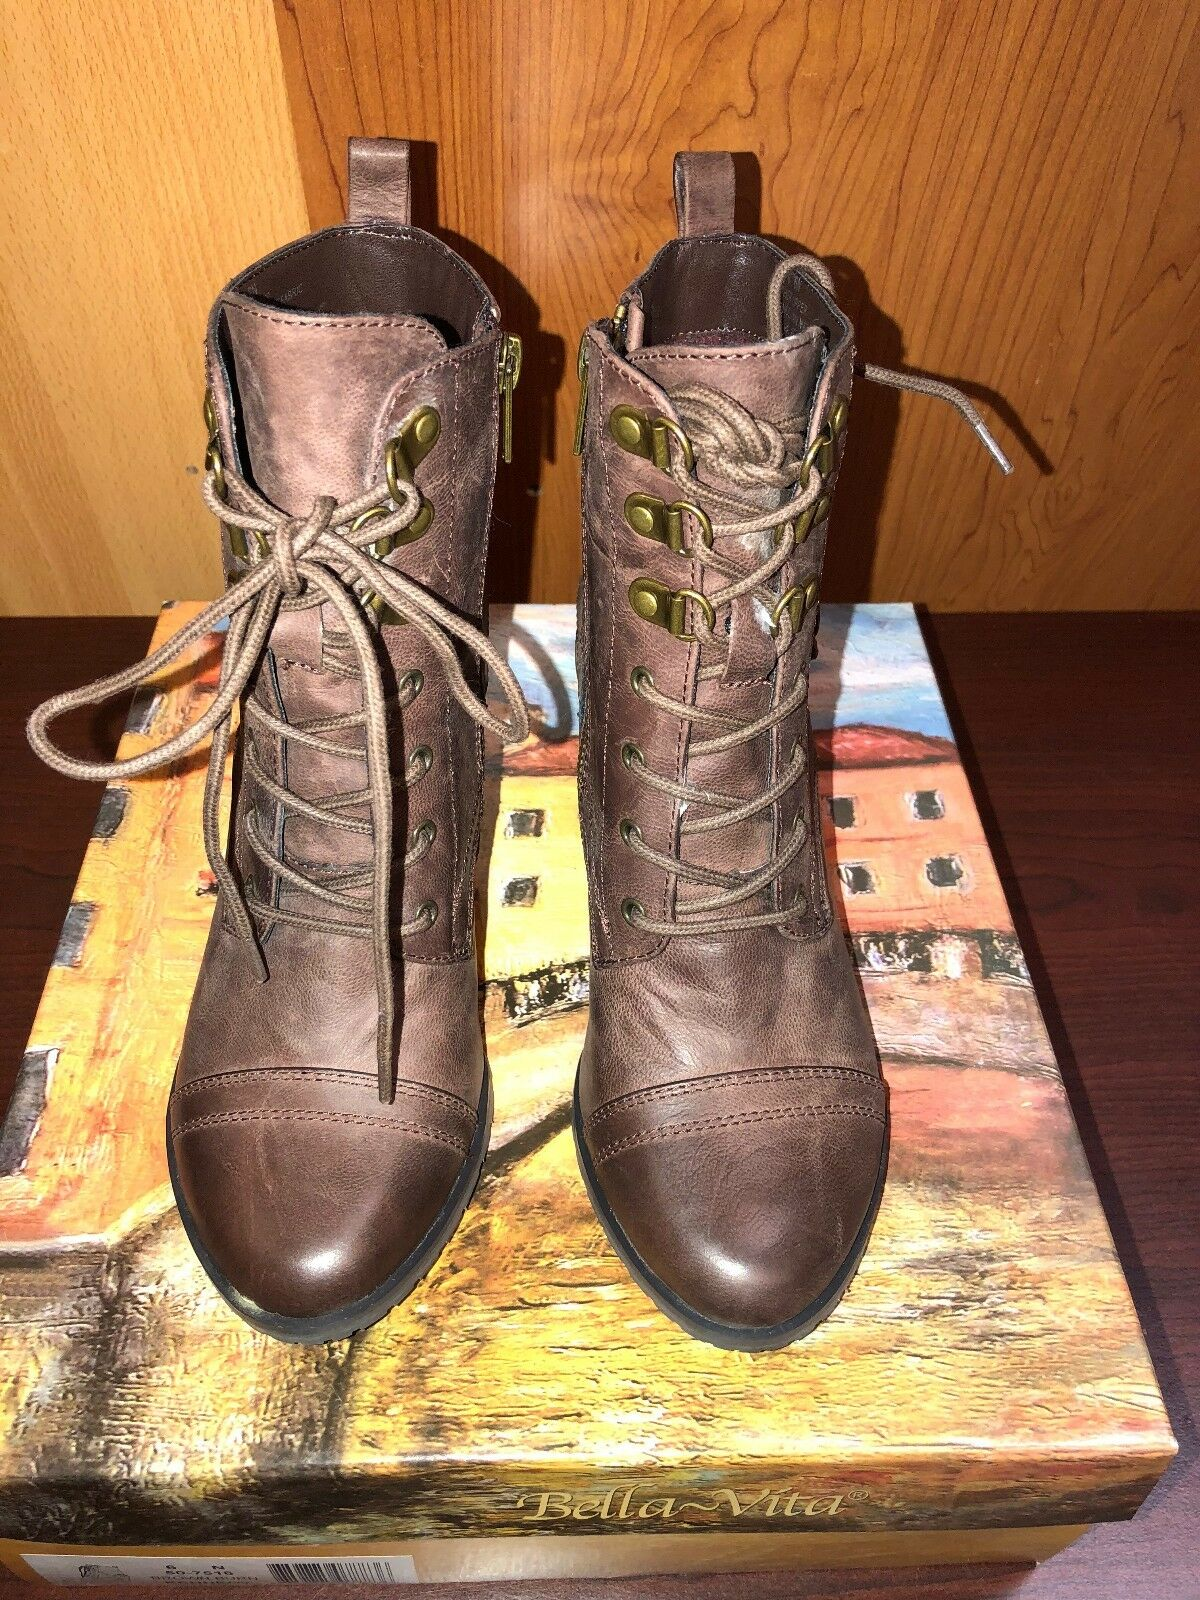 Bella Vita Kennedy boots for woman in (Brunt brown ) color style